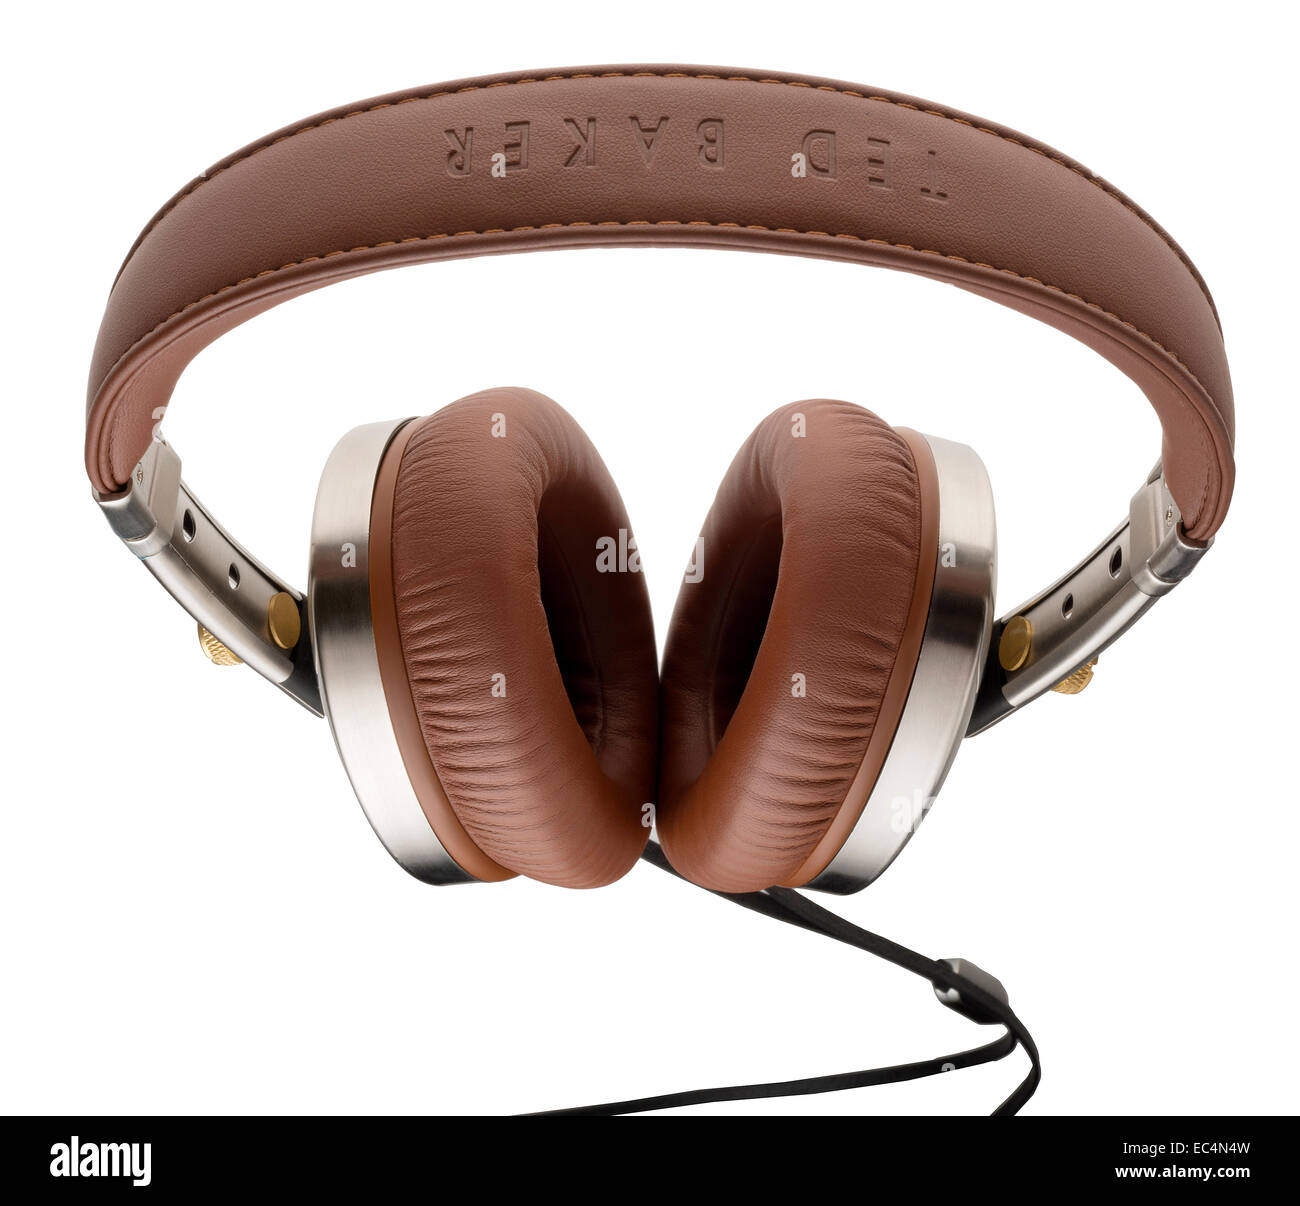 Ted Baker branded brown leather headphones. Over-ear headphones called Rockall. - Stock Image